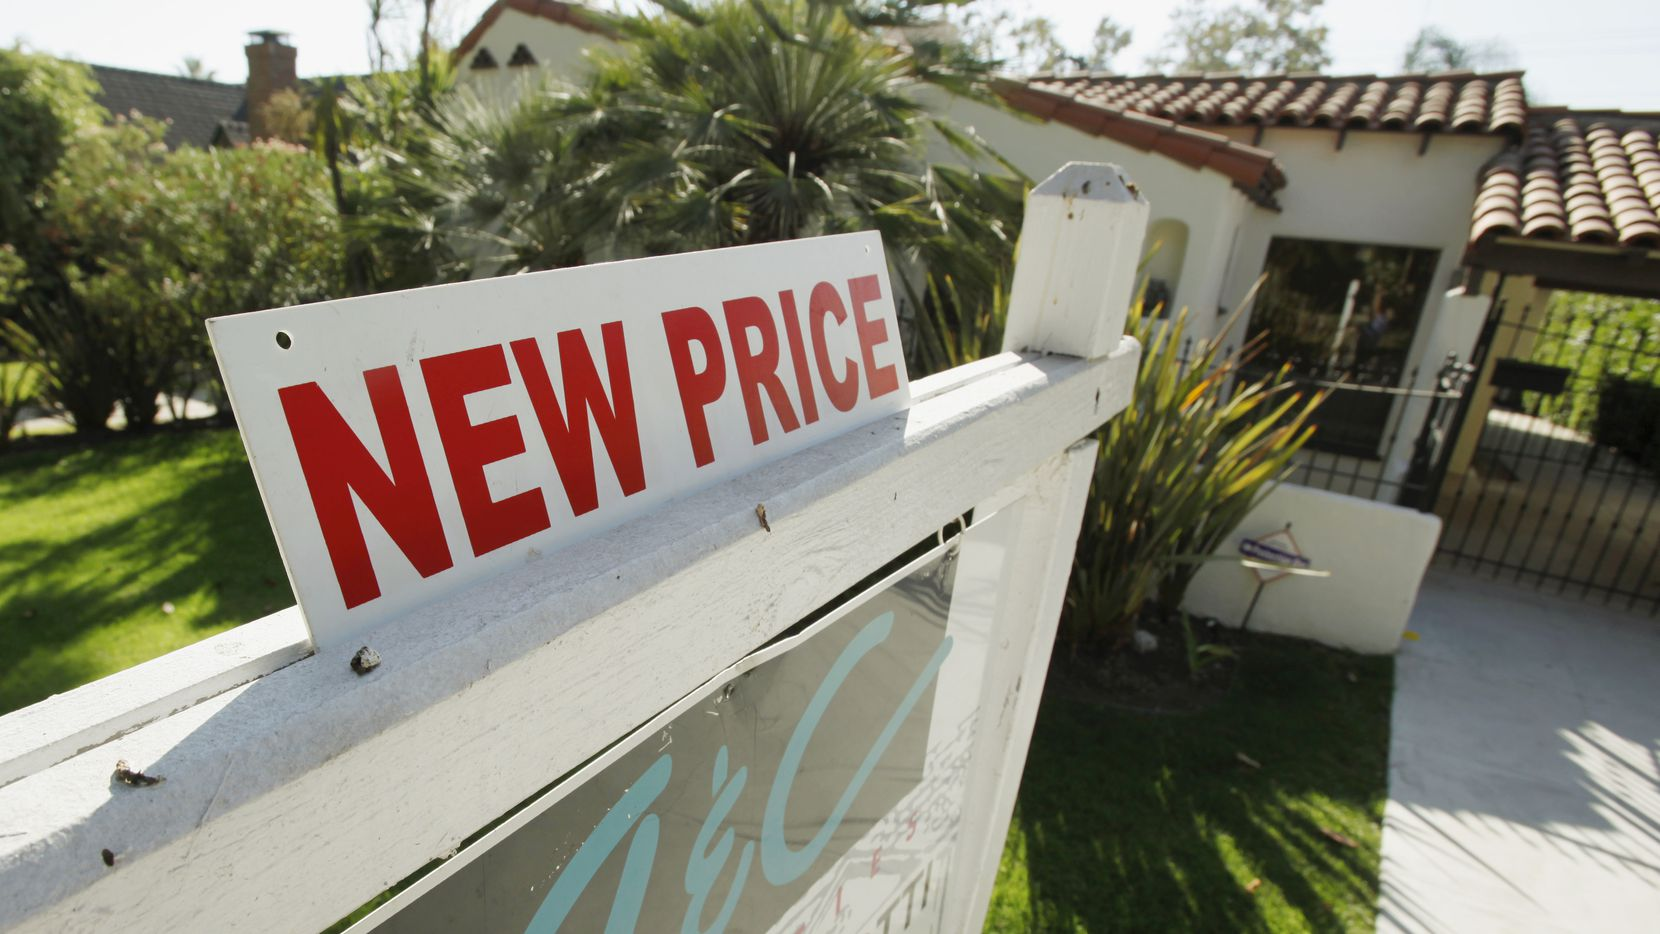 Nationwide home prices will rise only 3% next year, according to the Fitch Ratings Wall Street firm.